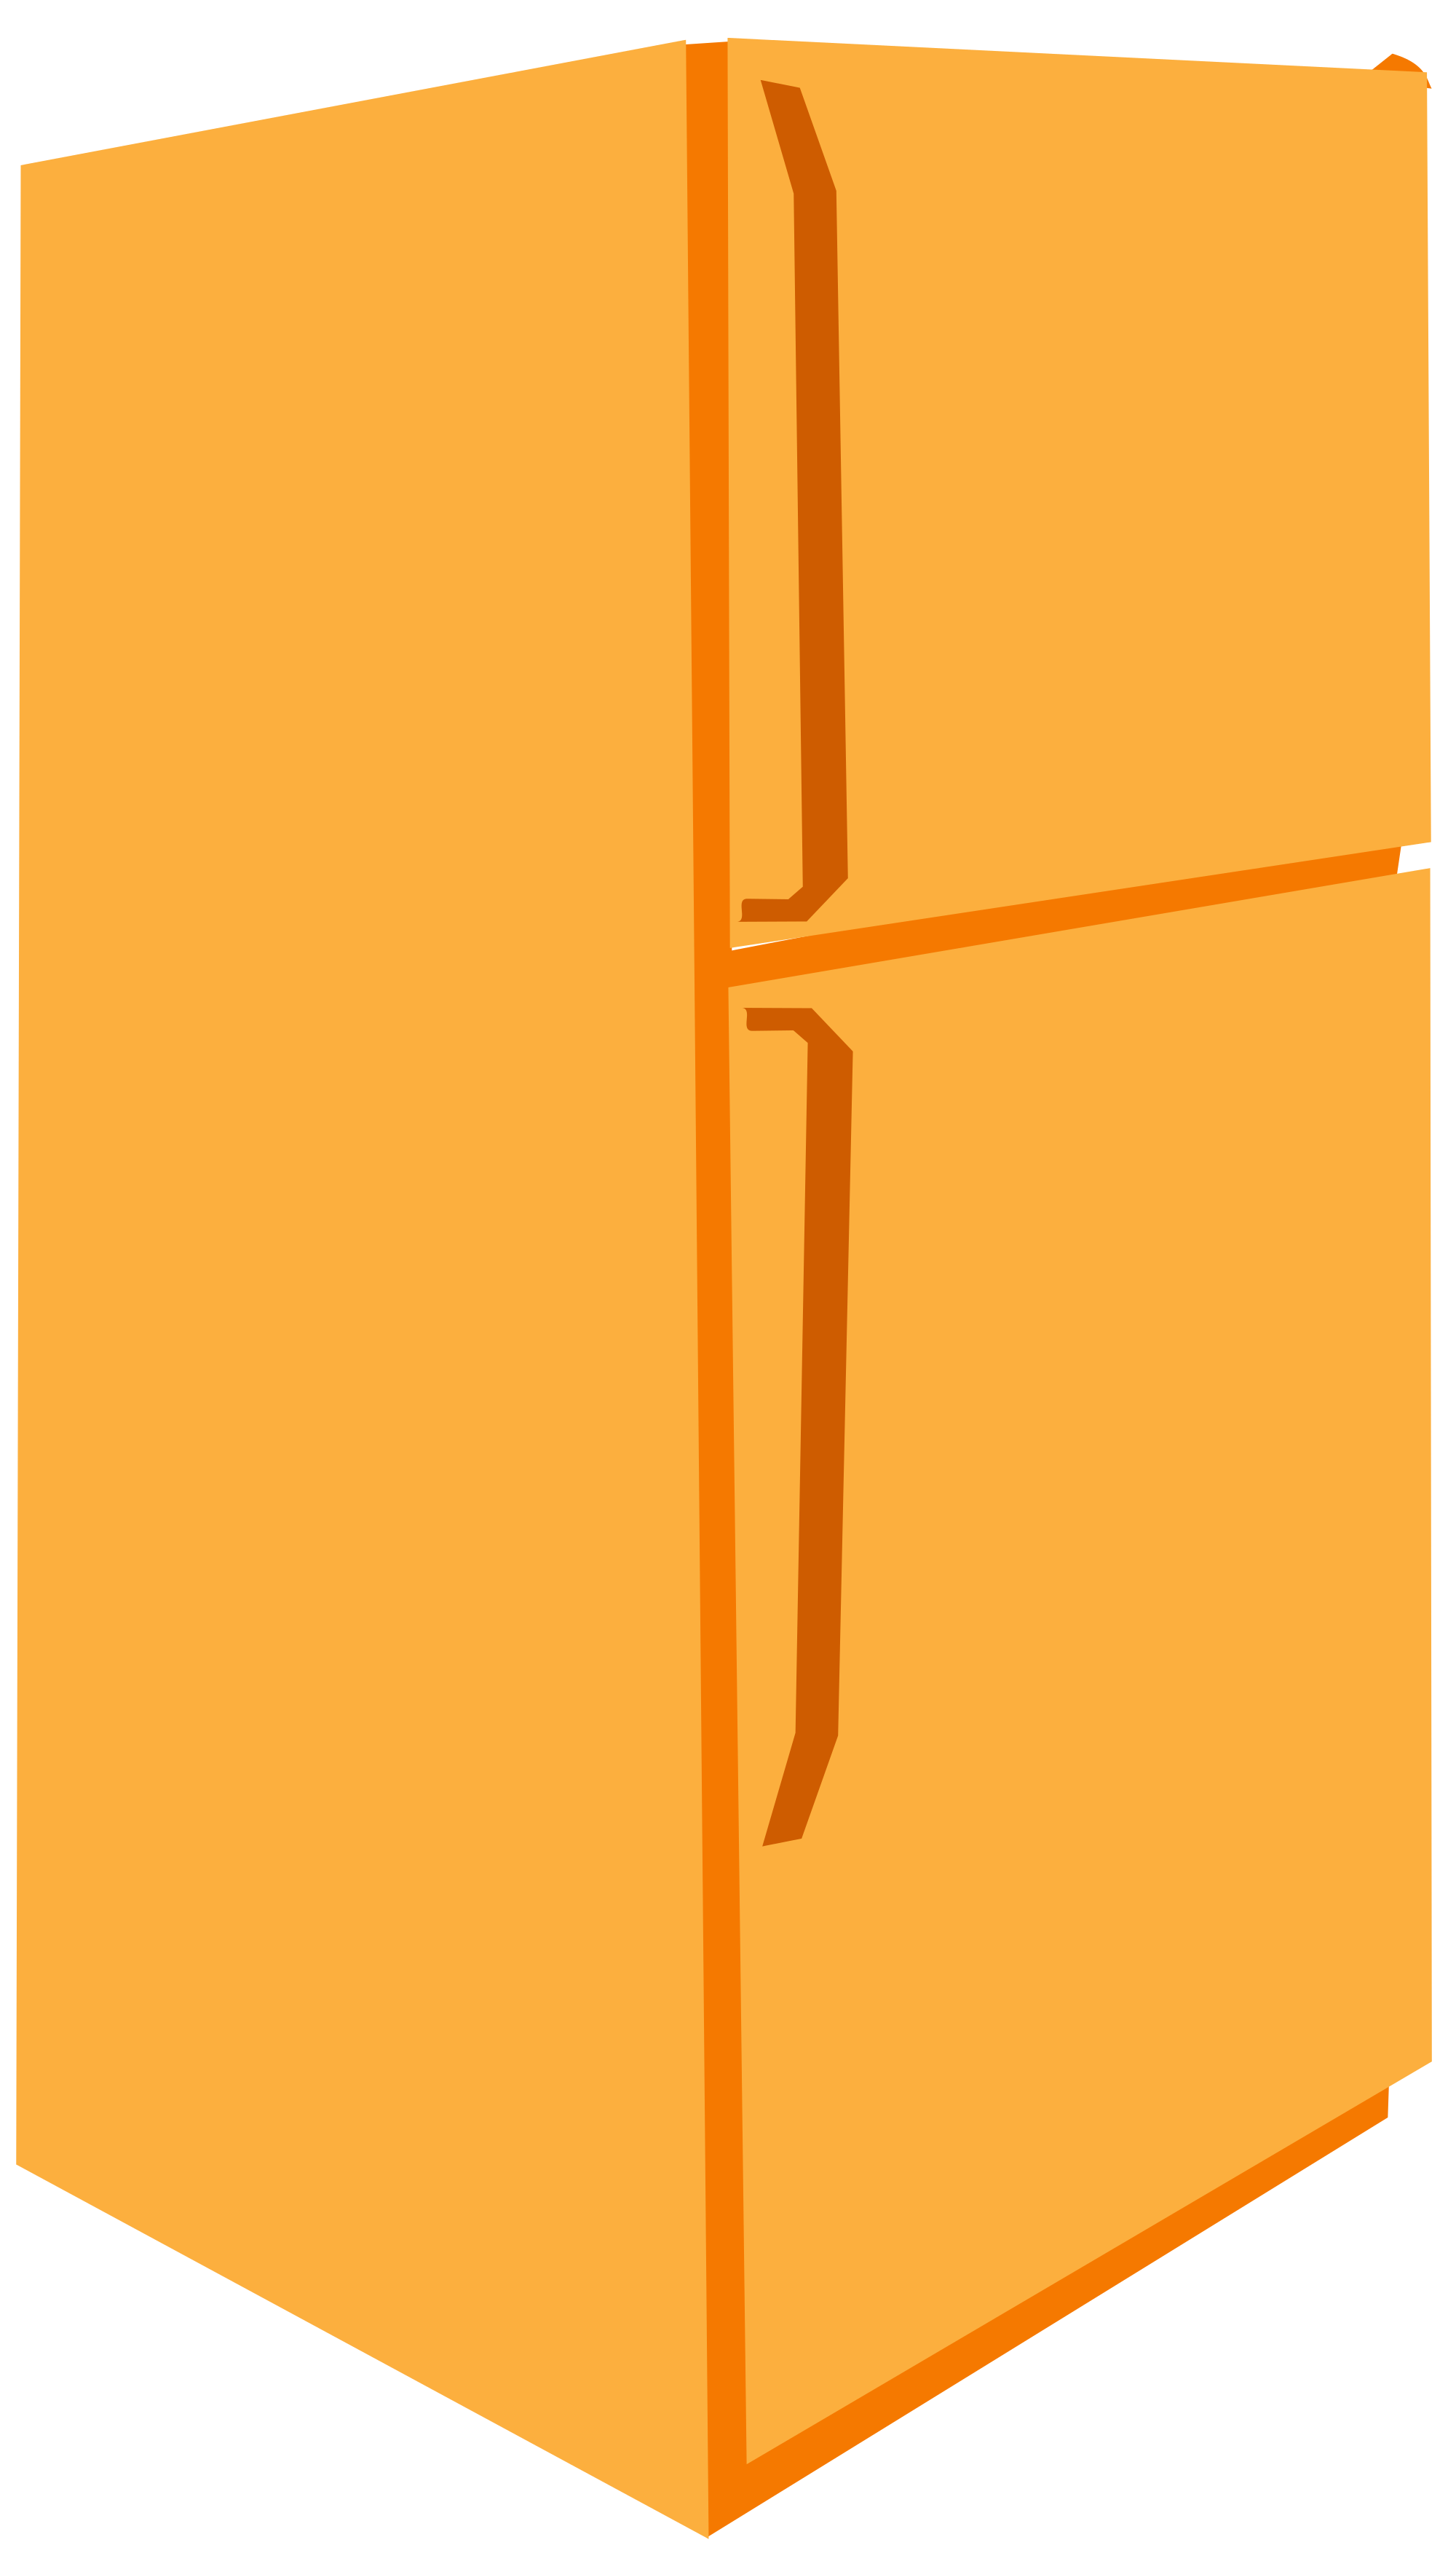 Fridge vector refrigerator. File svg wikimedia commons